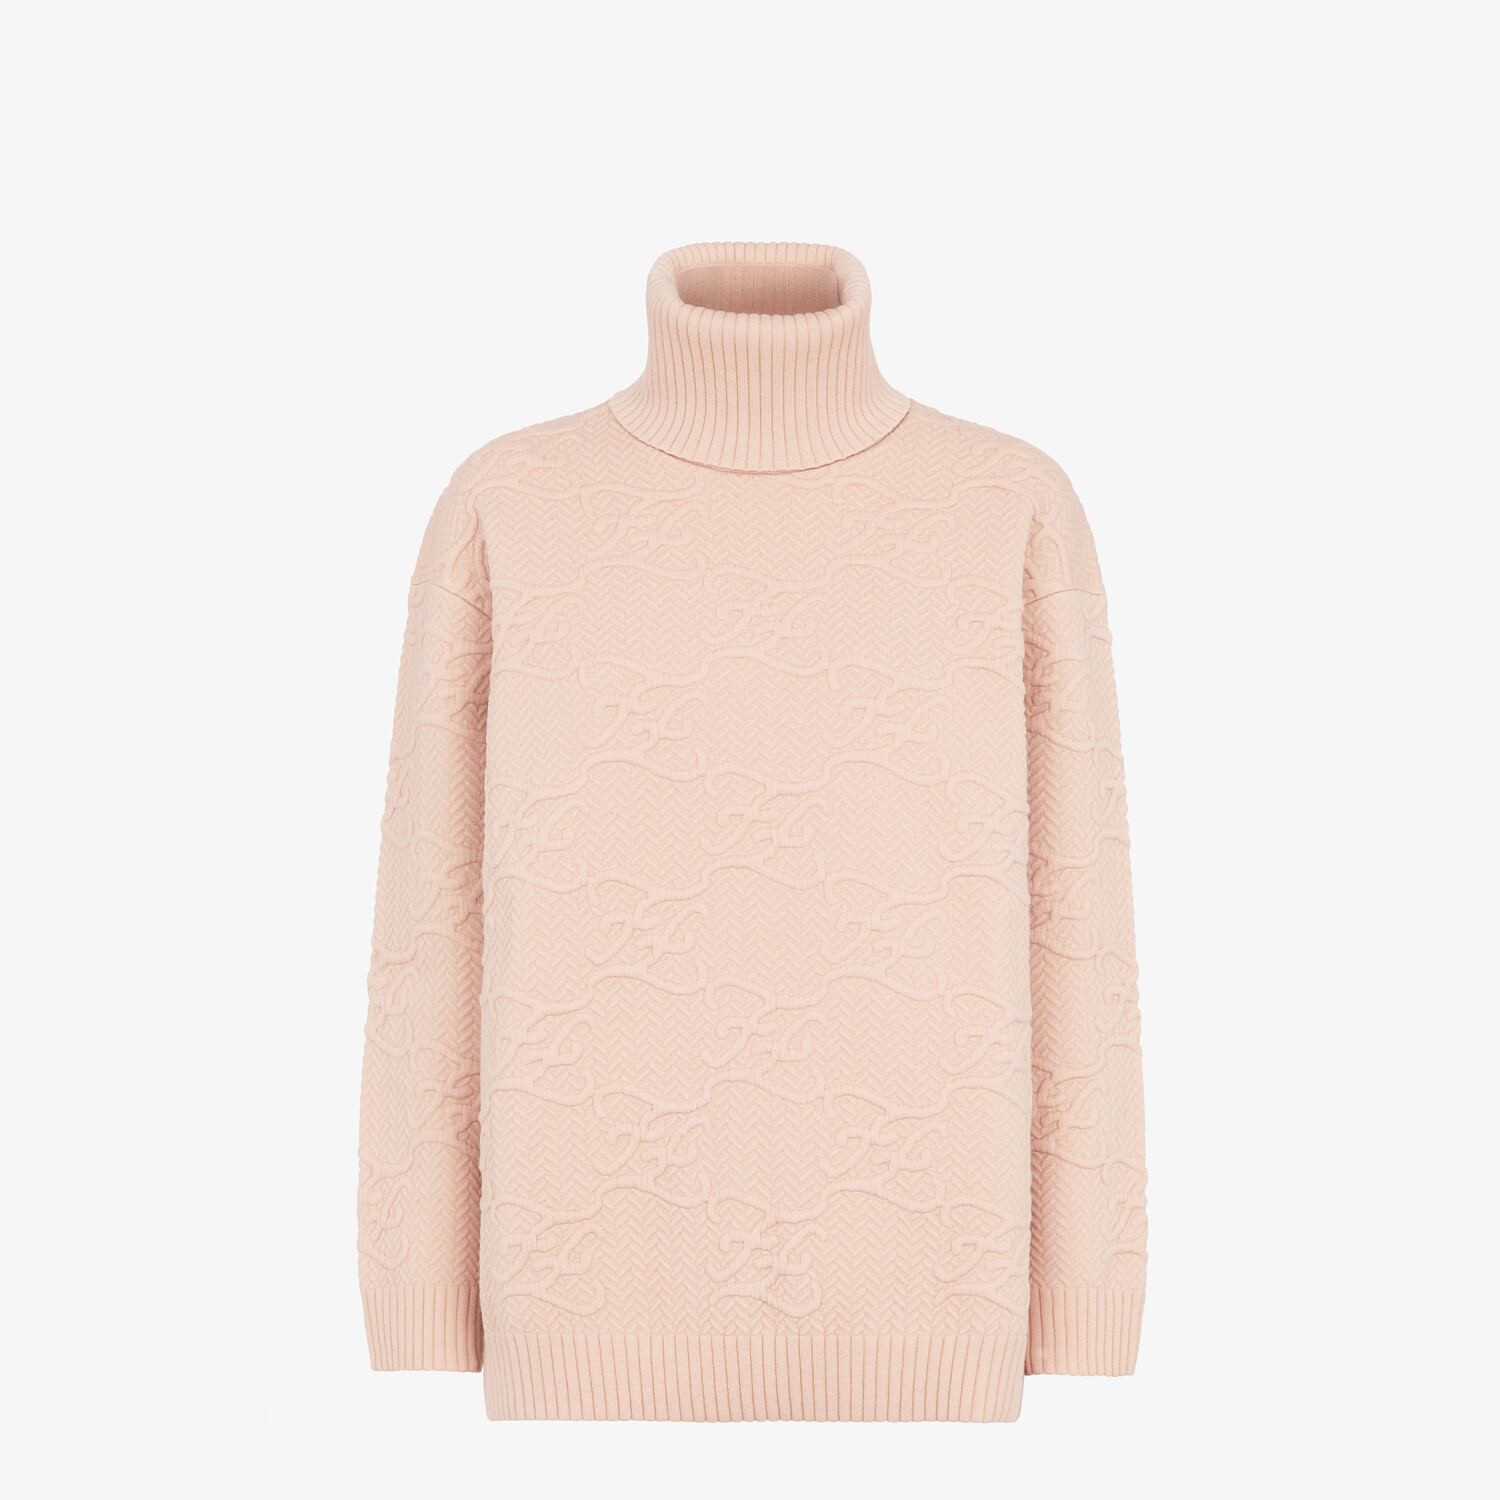 FENDI SWEATER - Pink wool and cashmere sweater - view 1 detail